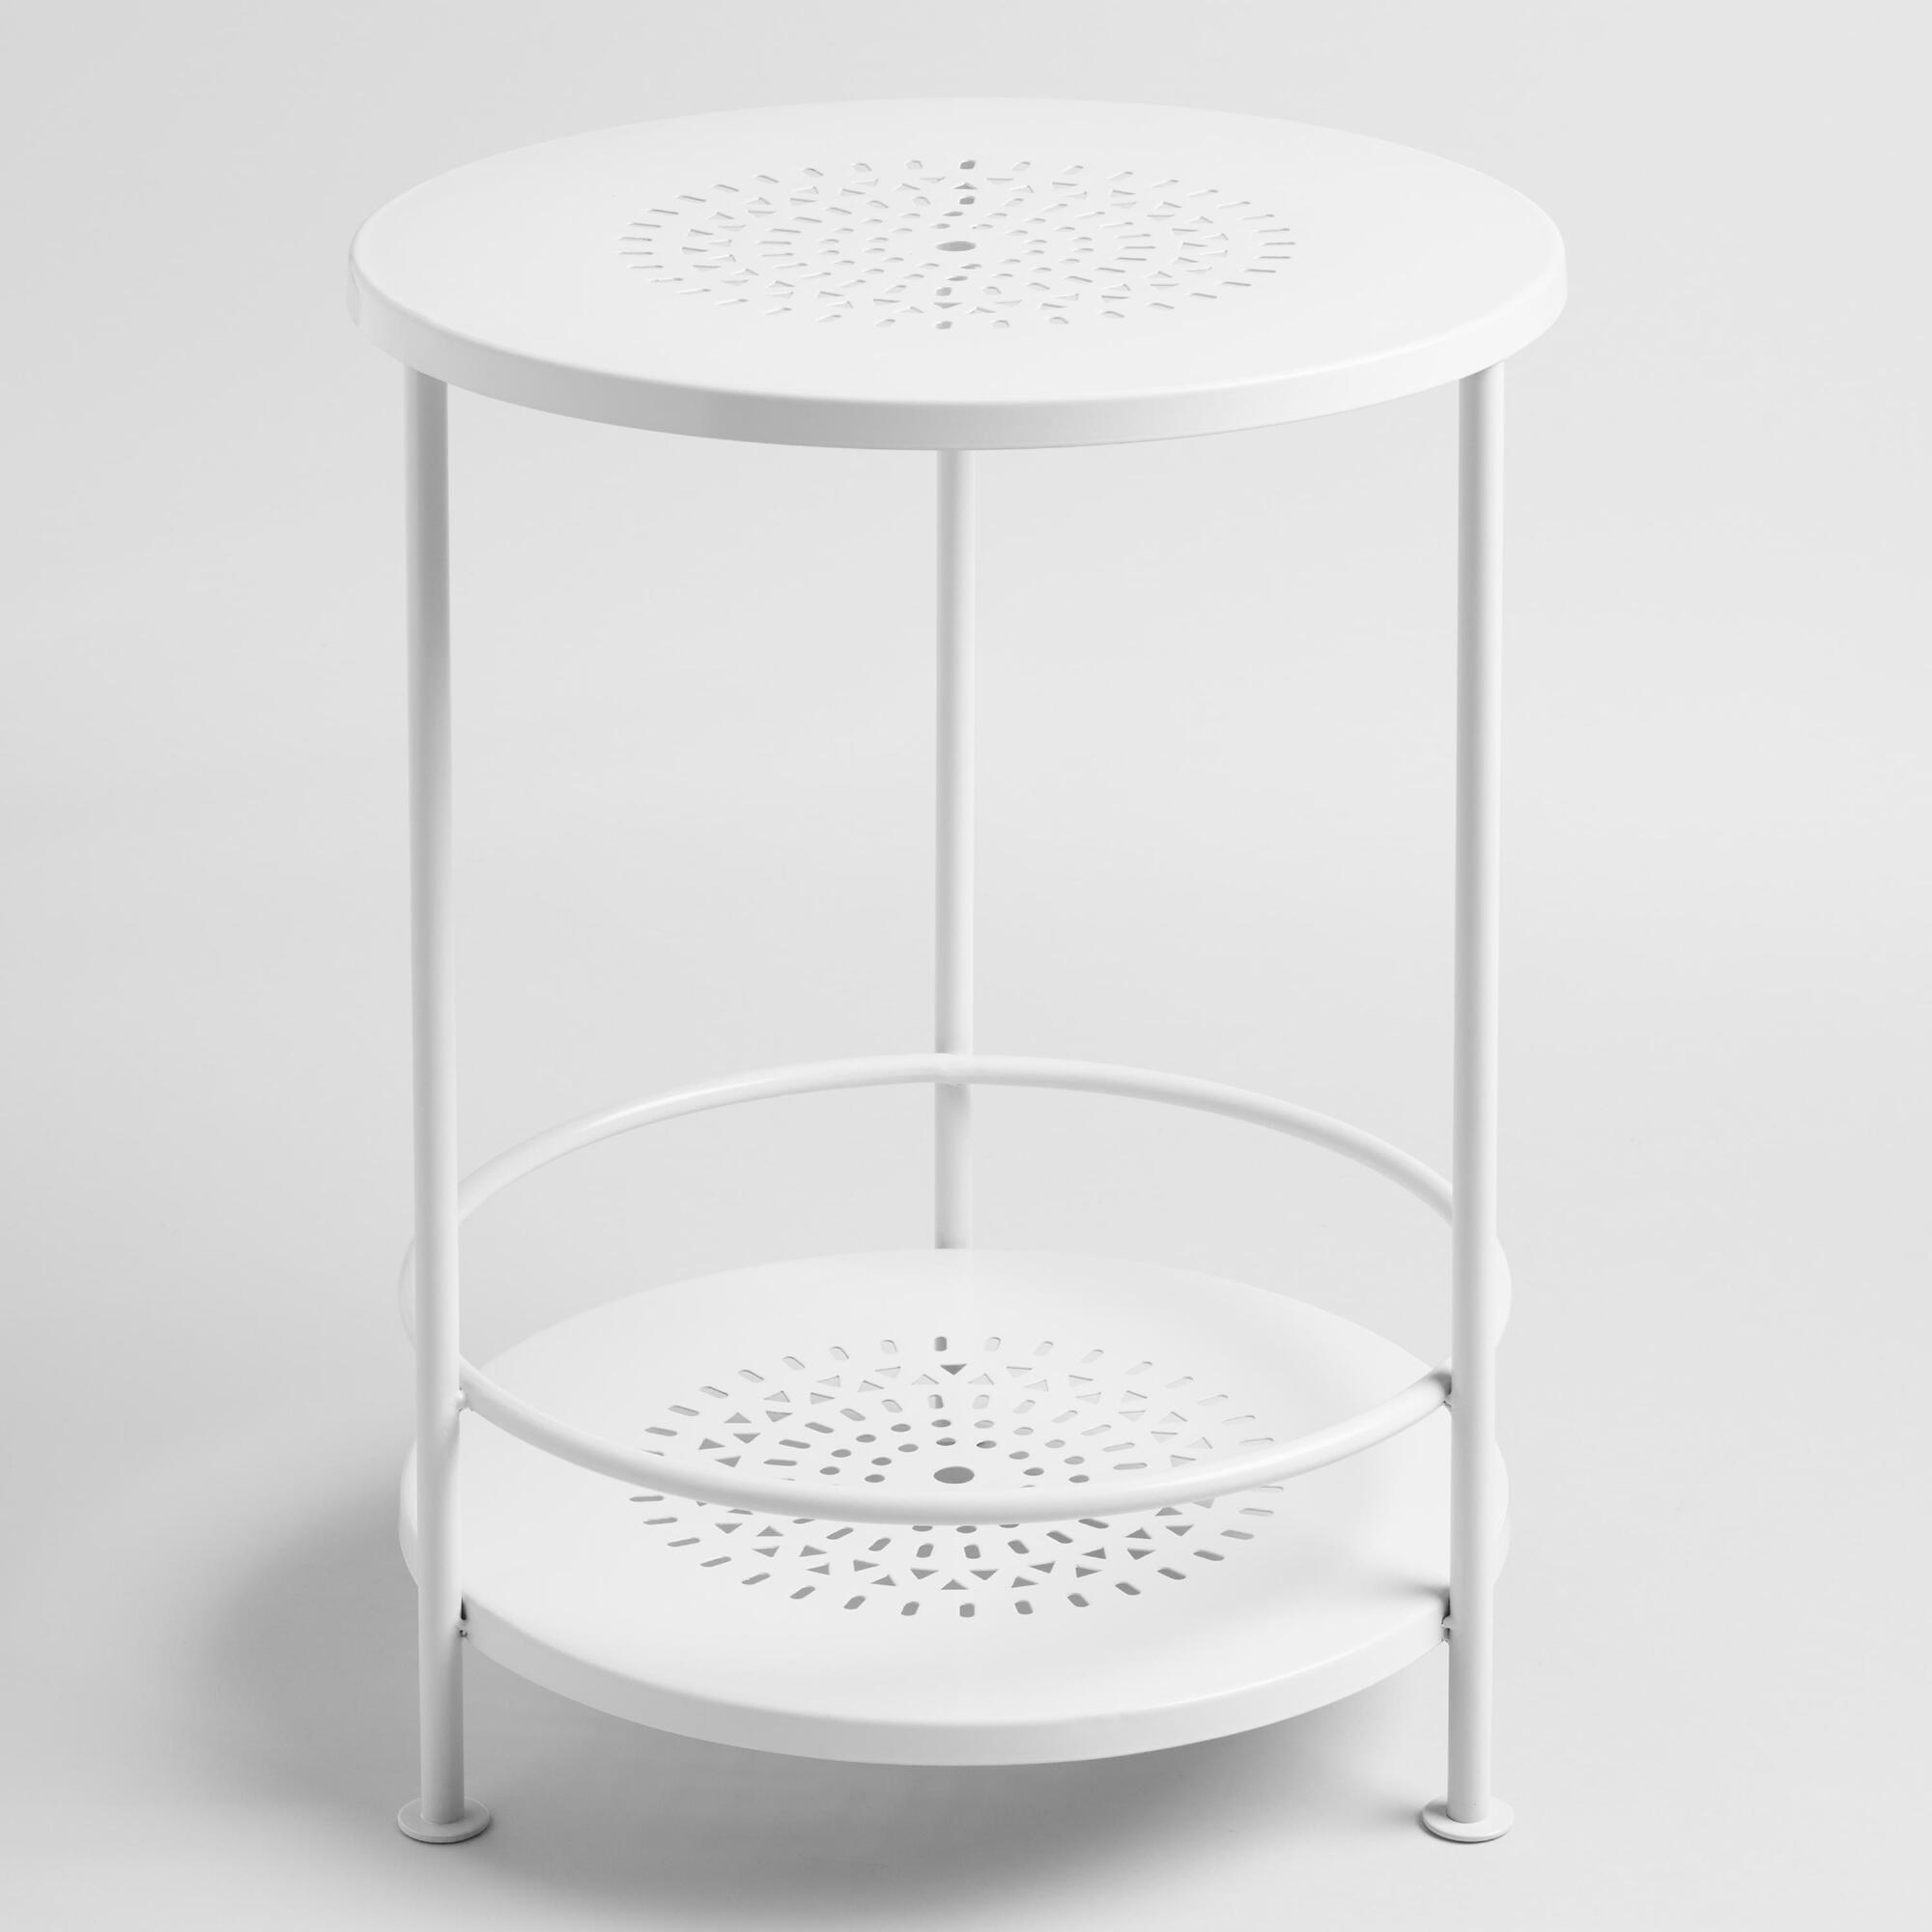 white metal marisol outdoor patio accent table world market circular cover black lamp shades furniture cabinets inch legs glass bedroom end tables drum stool with back round and